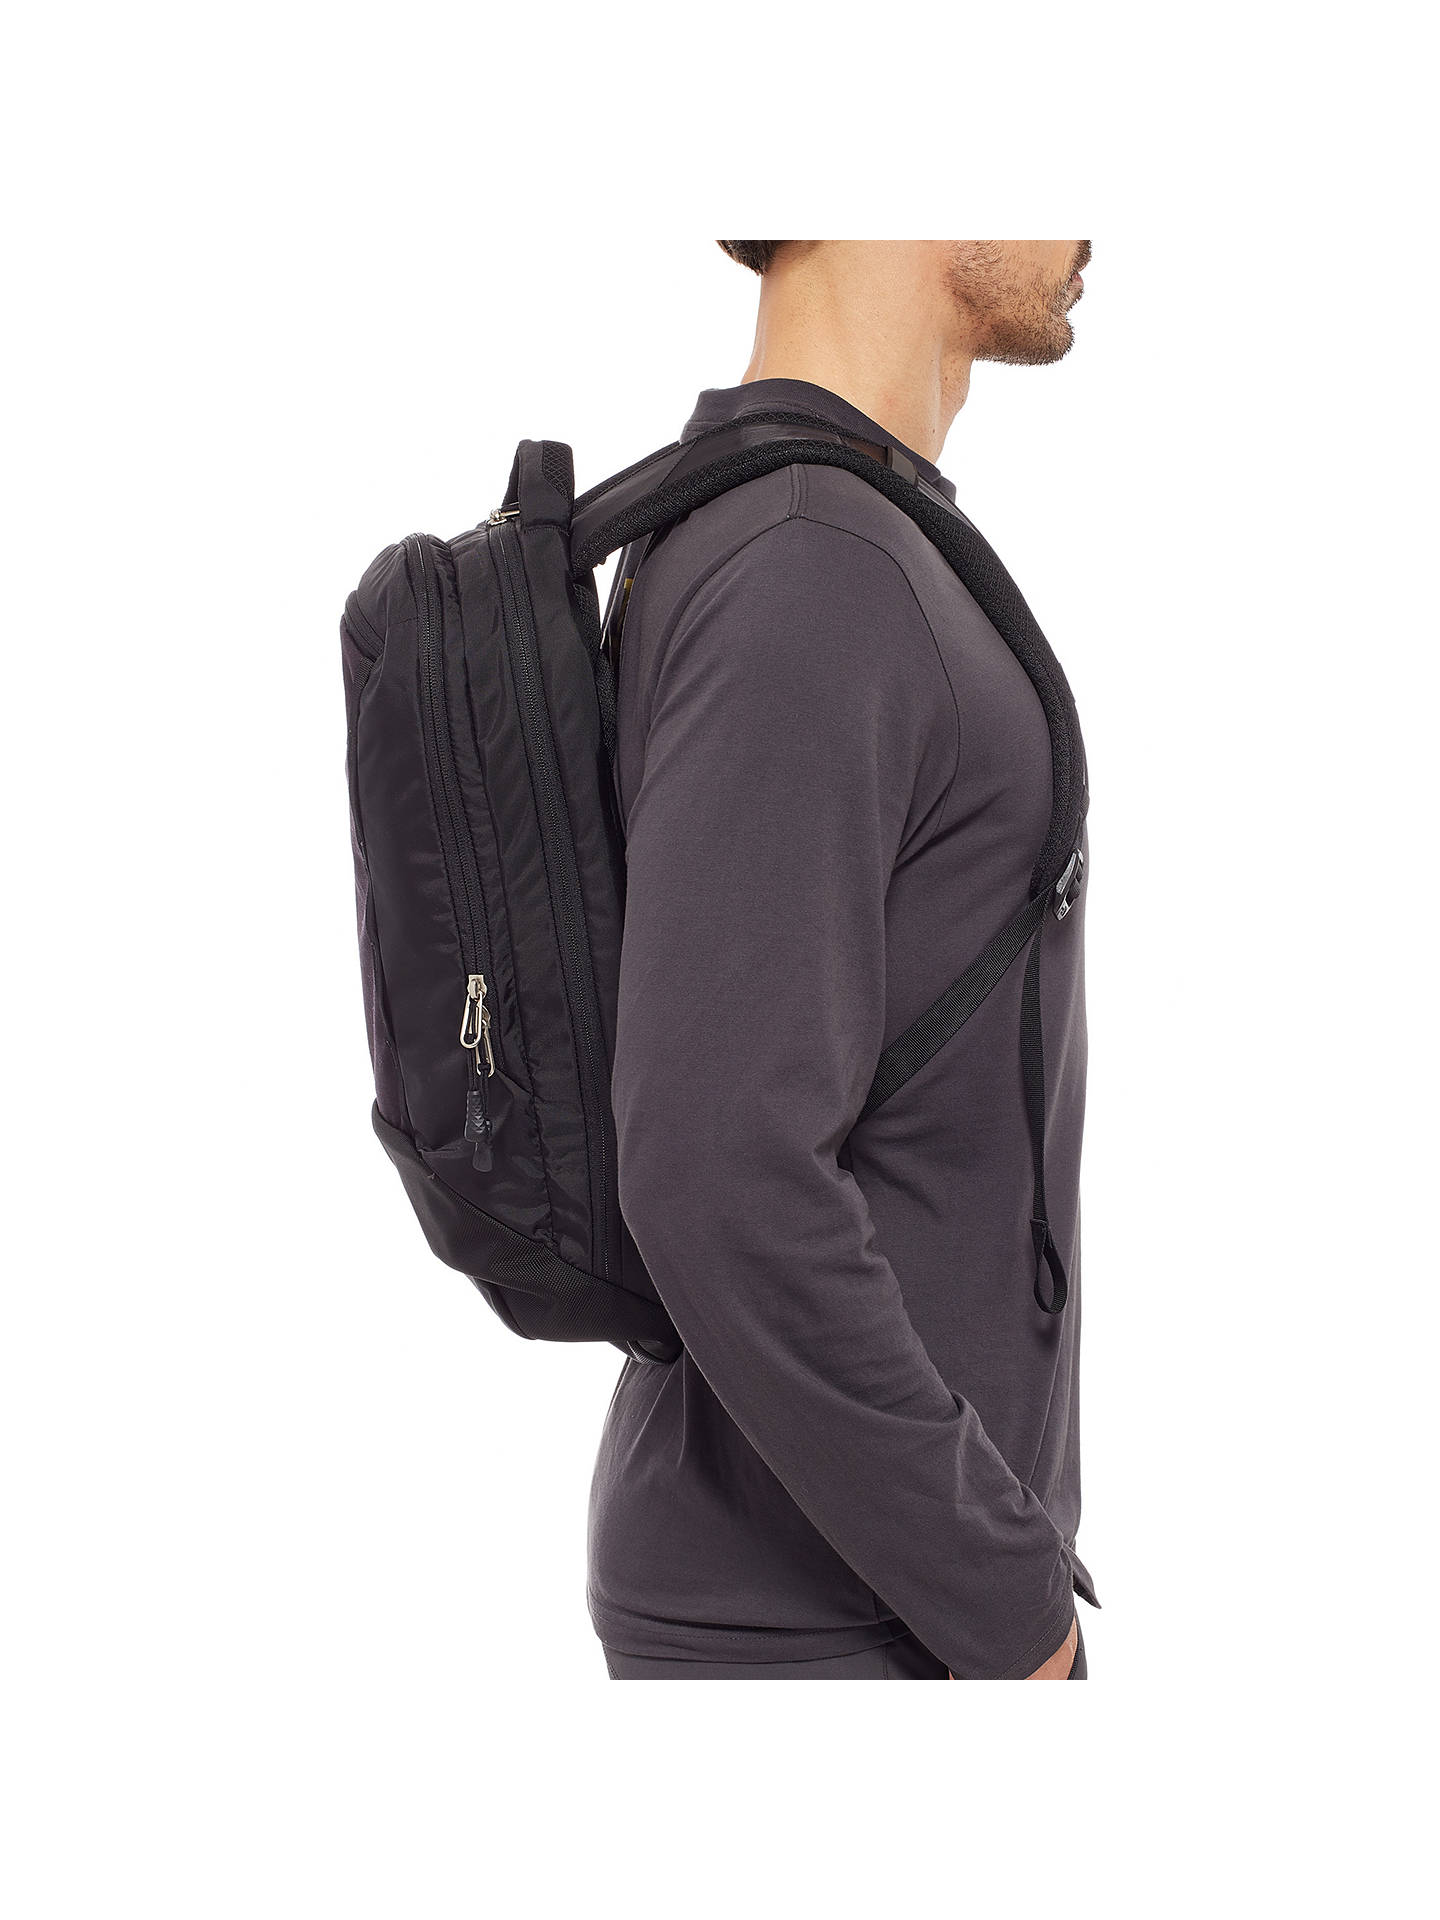 9de0345f7 The North Face Microbyte Backpack, Black